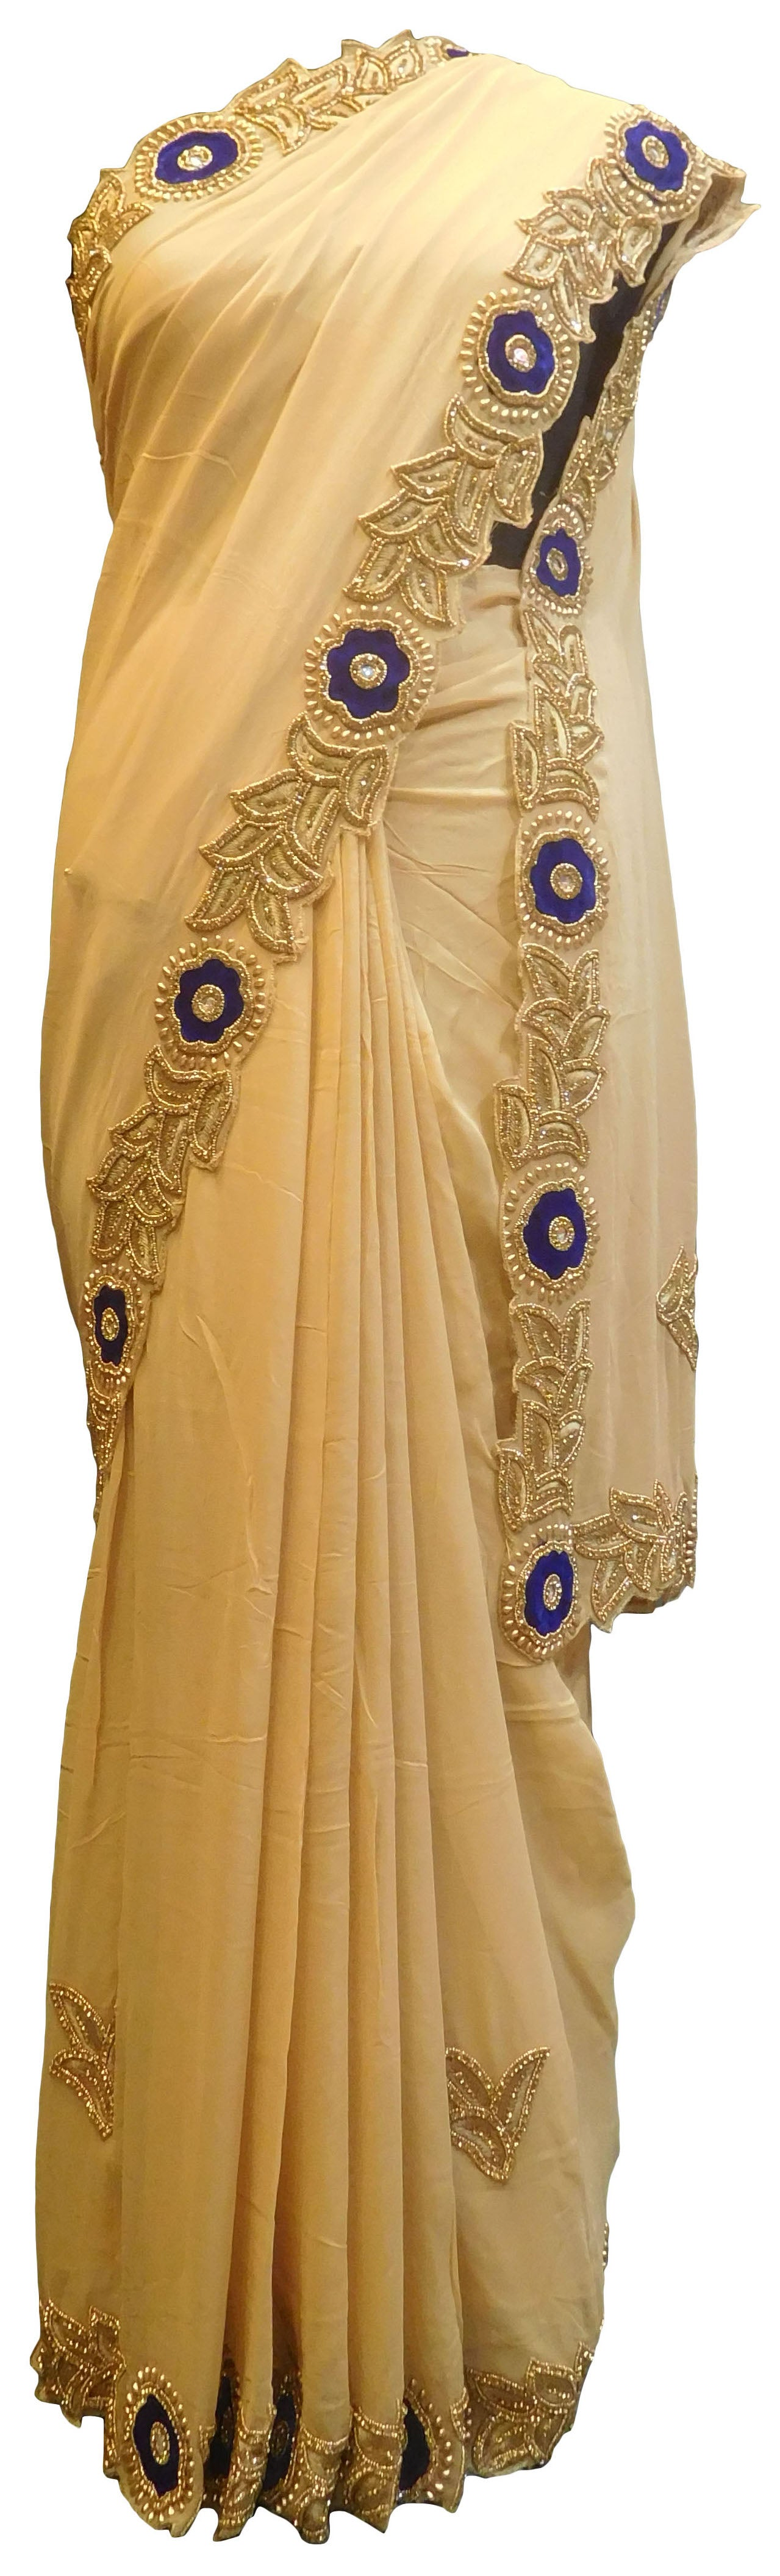 SMSAREE Beige Designer Wedding Partywear Crepe (Chinon) Stone Thread & Beads Hand Embroidery Work Bridal Saree Sari With Blouse Piece E753